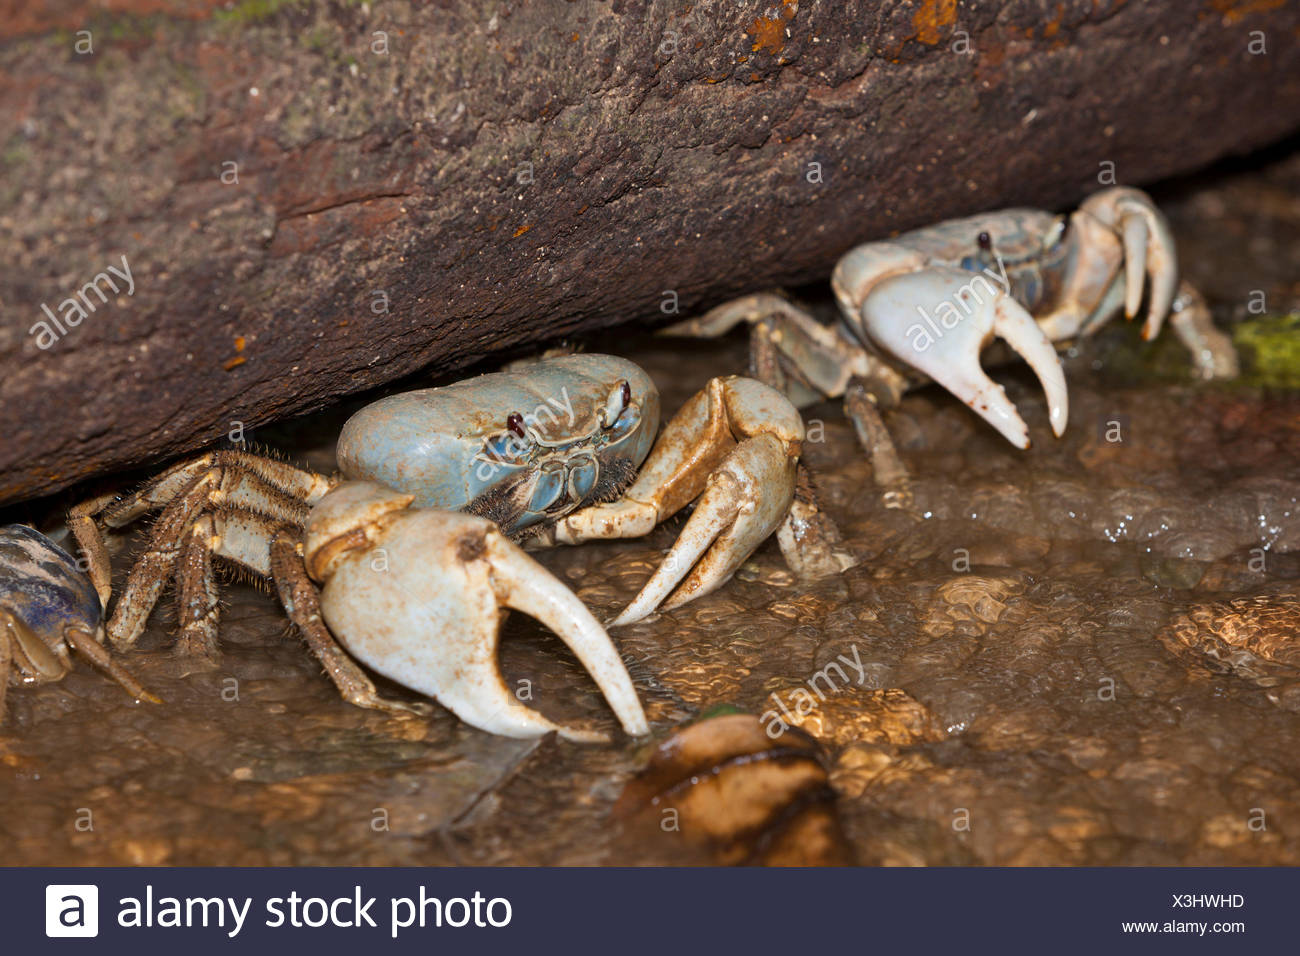 Blue Crab Stock Photos & Blue Crab Stock Images - Alamy